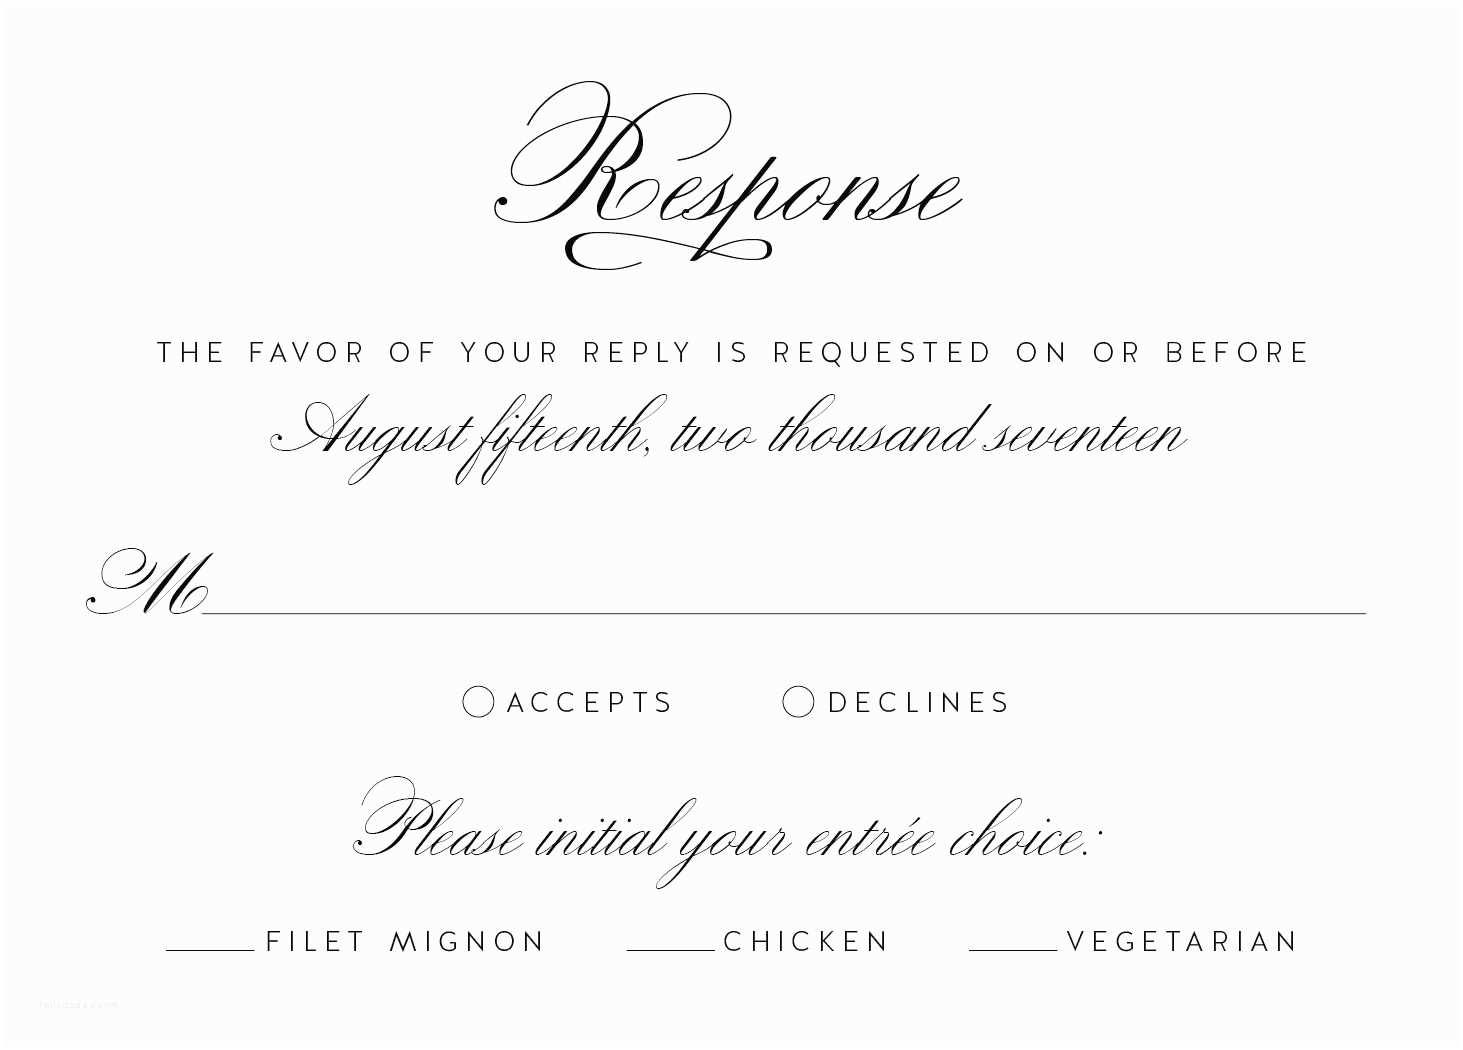 Wedding Invitations and Response Cards All In One Wedding Invitation Reply Card Wording Wedding Response